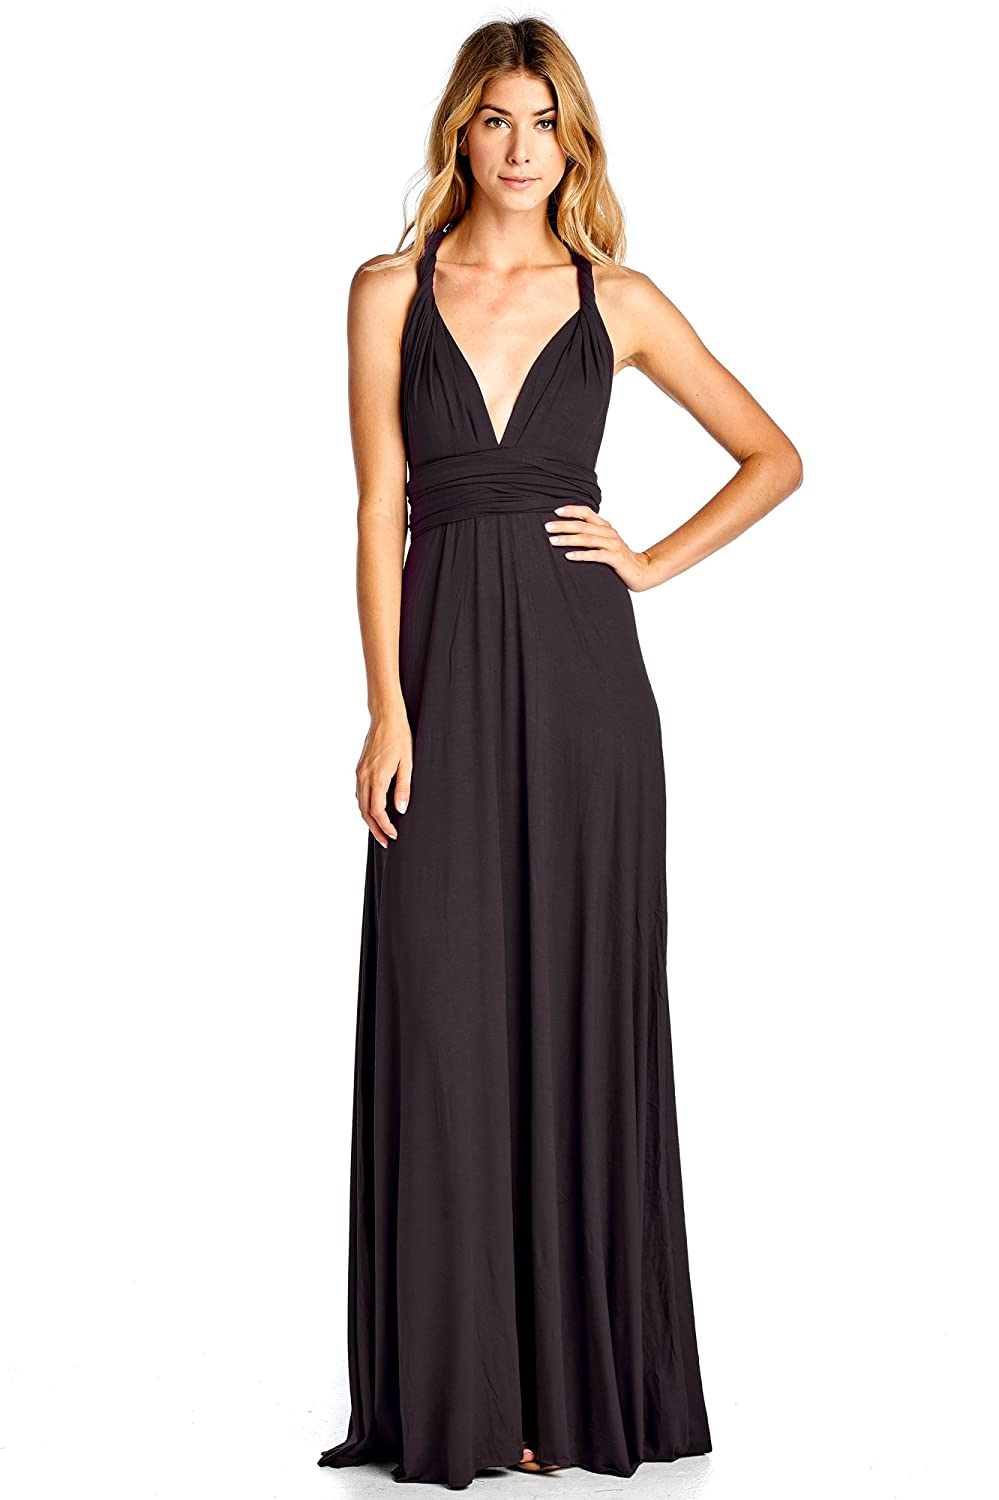 Bridesmaid dresses amazon solid convertible multi way long t shirt maxi dress made in usa ombrellifo Images